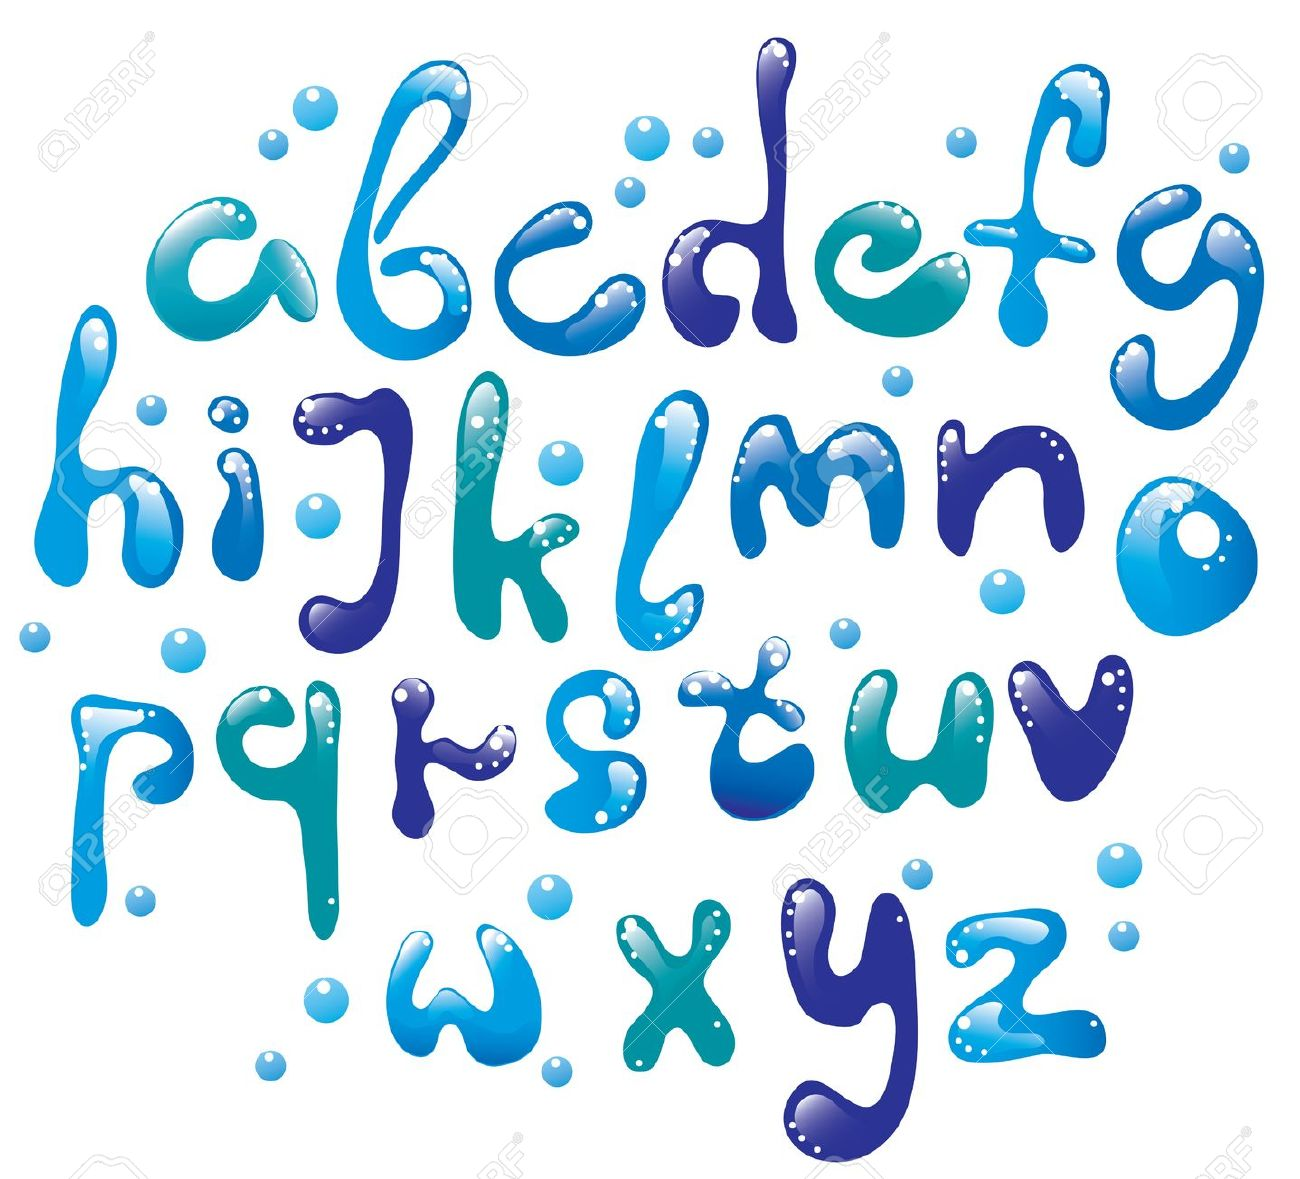 Free clipart water letters